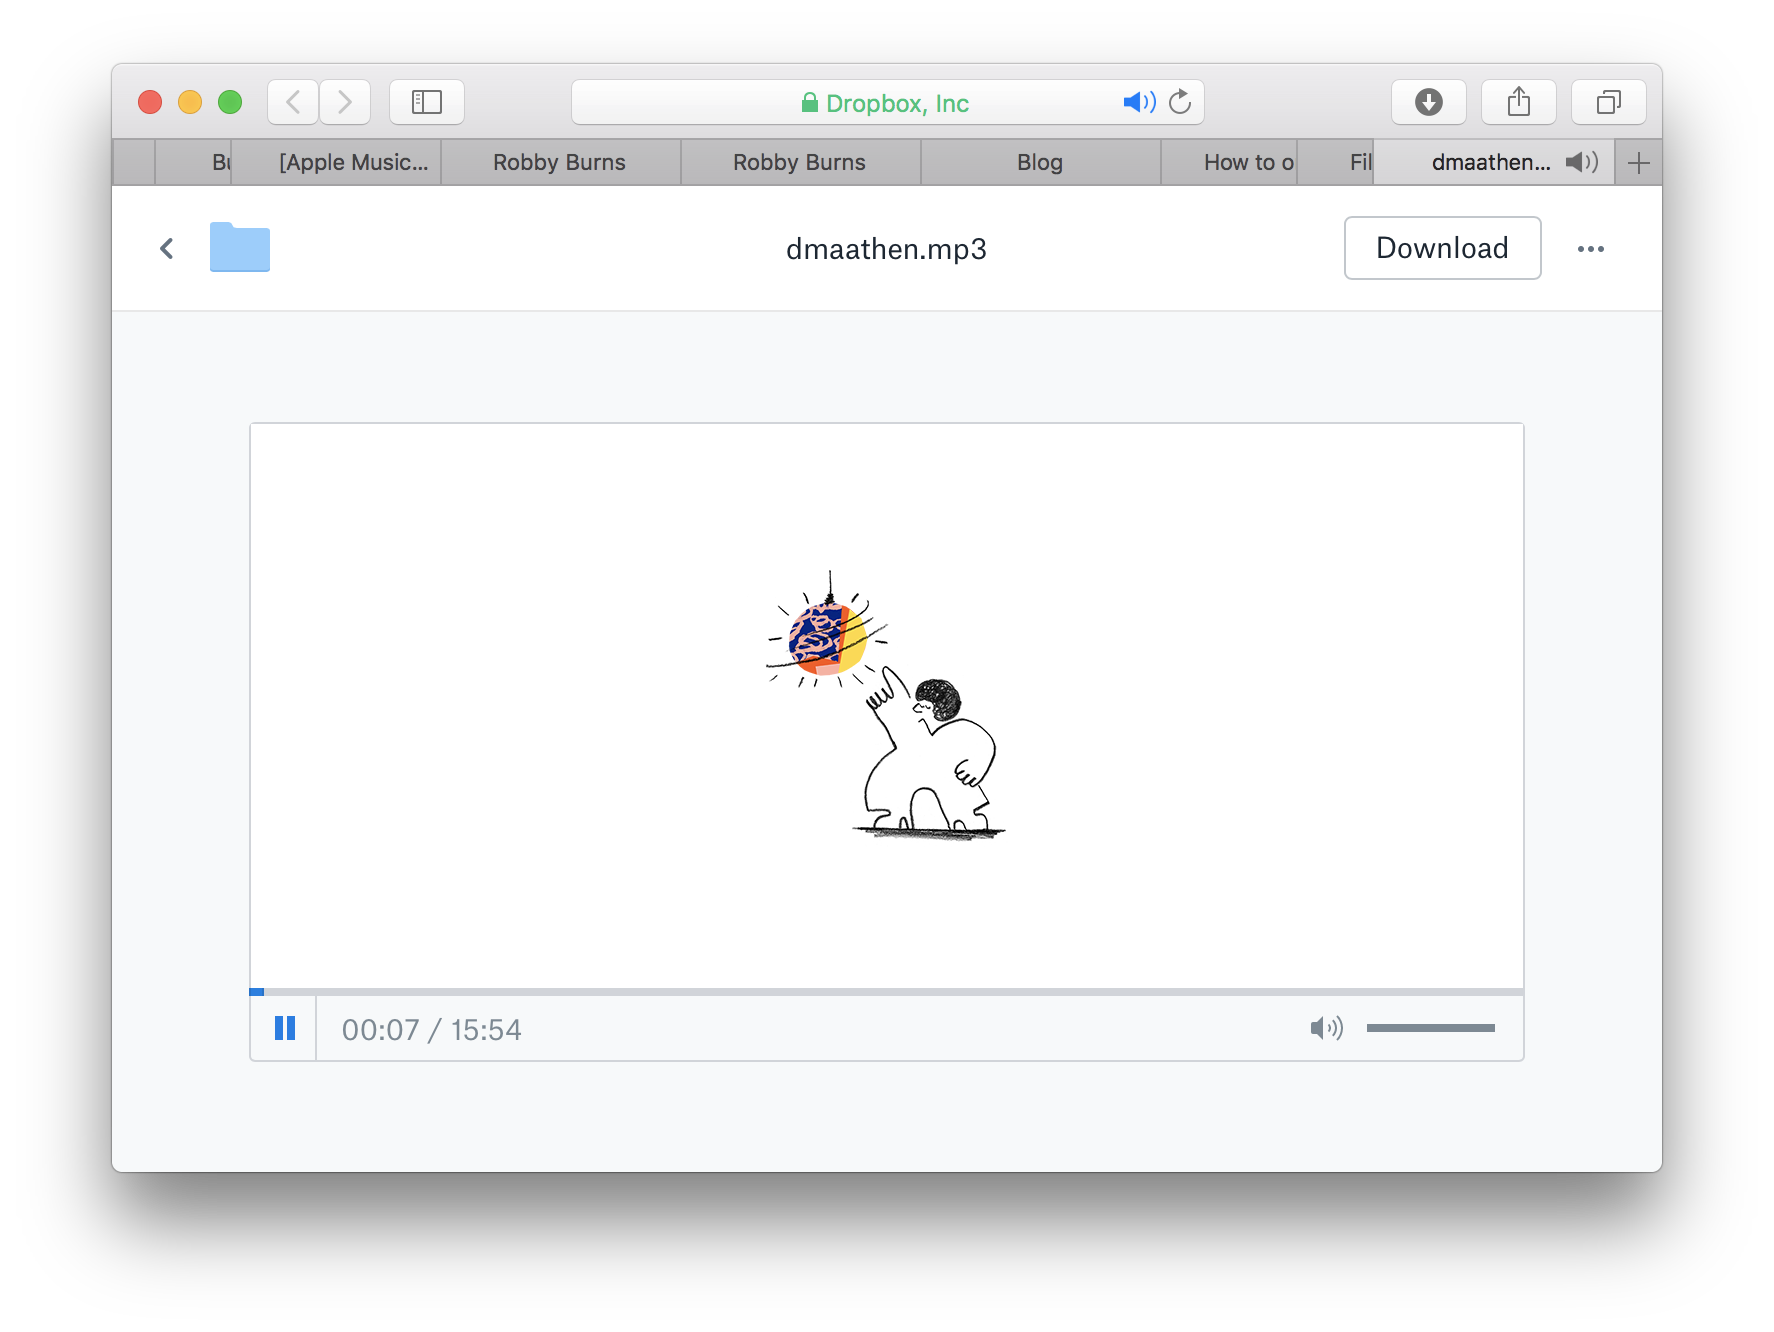 Like, really, Dropbox. In this limited space, could you seriously not think of any more information I might want to see while playing back an audio file other than this dude dancing next to a disco ball? This particular page is even worse on the small screen of an iPhone.